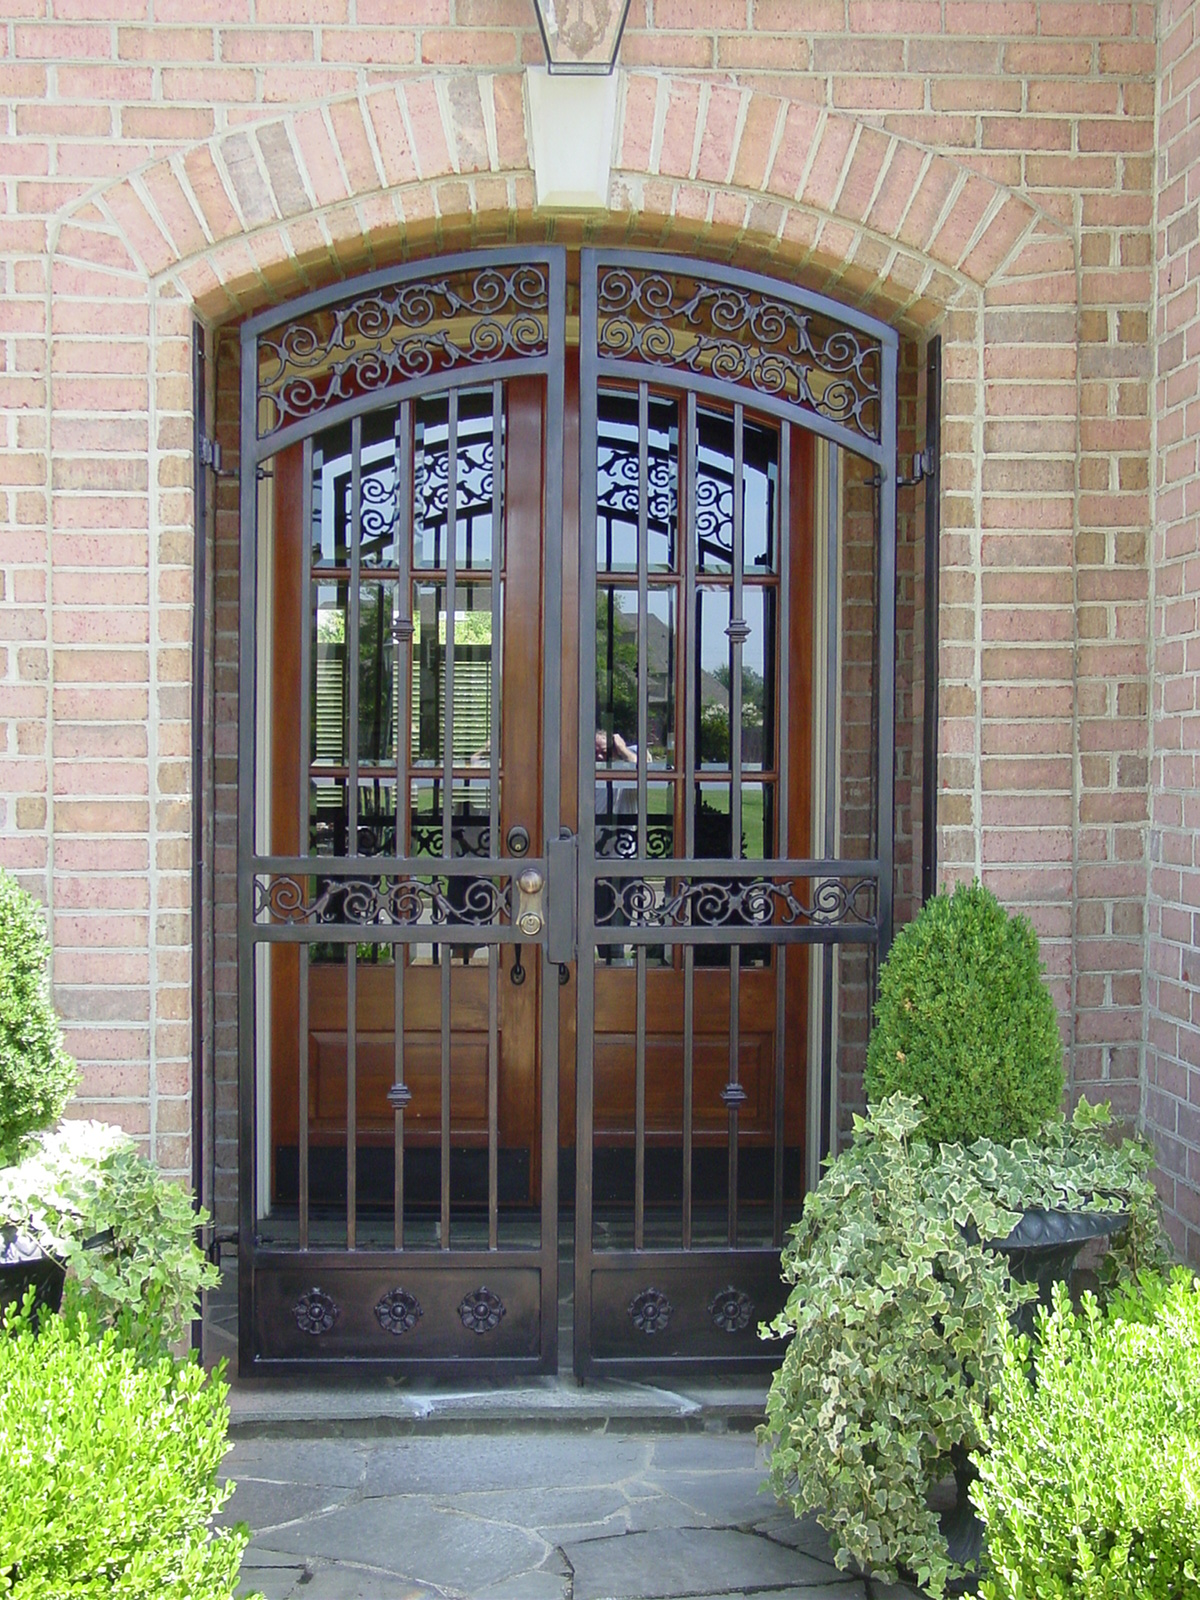 PG 3 & Foyer Gates | West Tennessee Ornamental Door